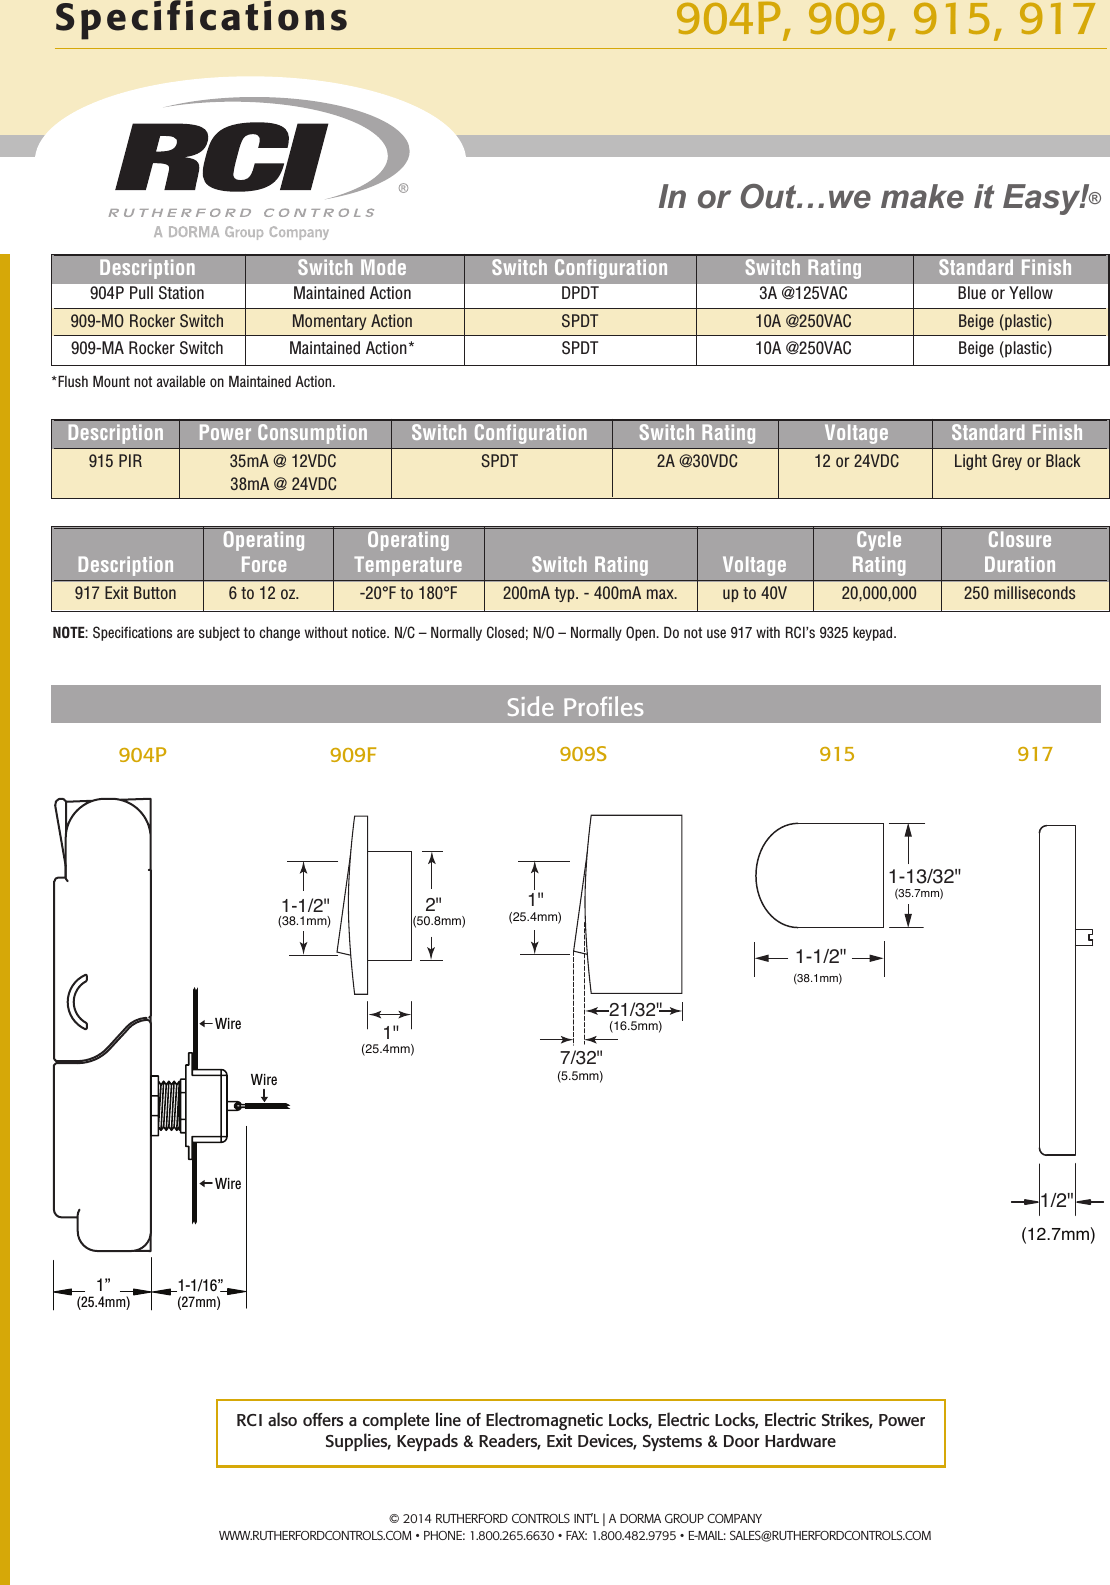 emergency door release wiring diagram tornado alley rci 904p pull station product sheet zl904 17 r0214 2